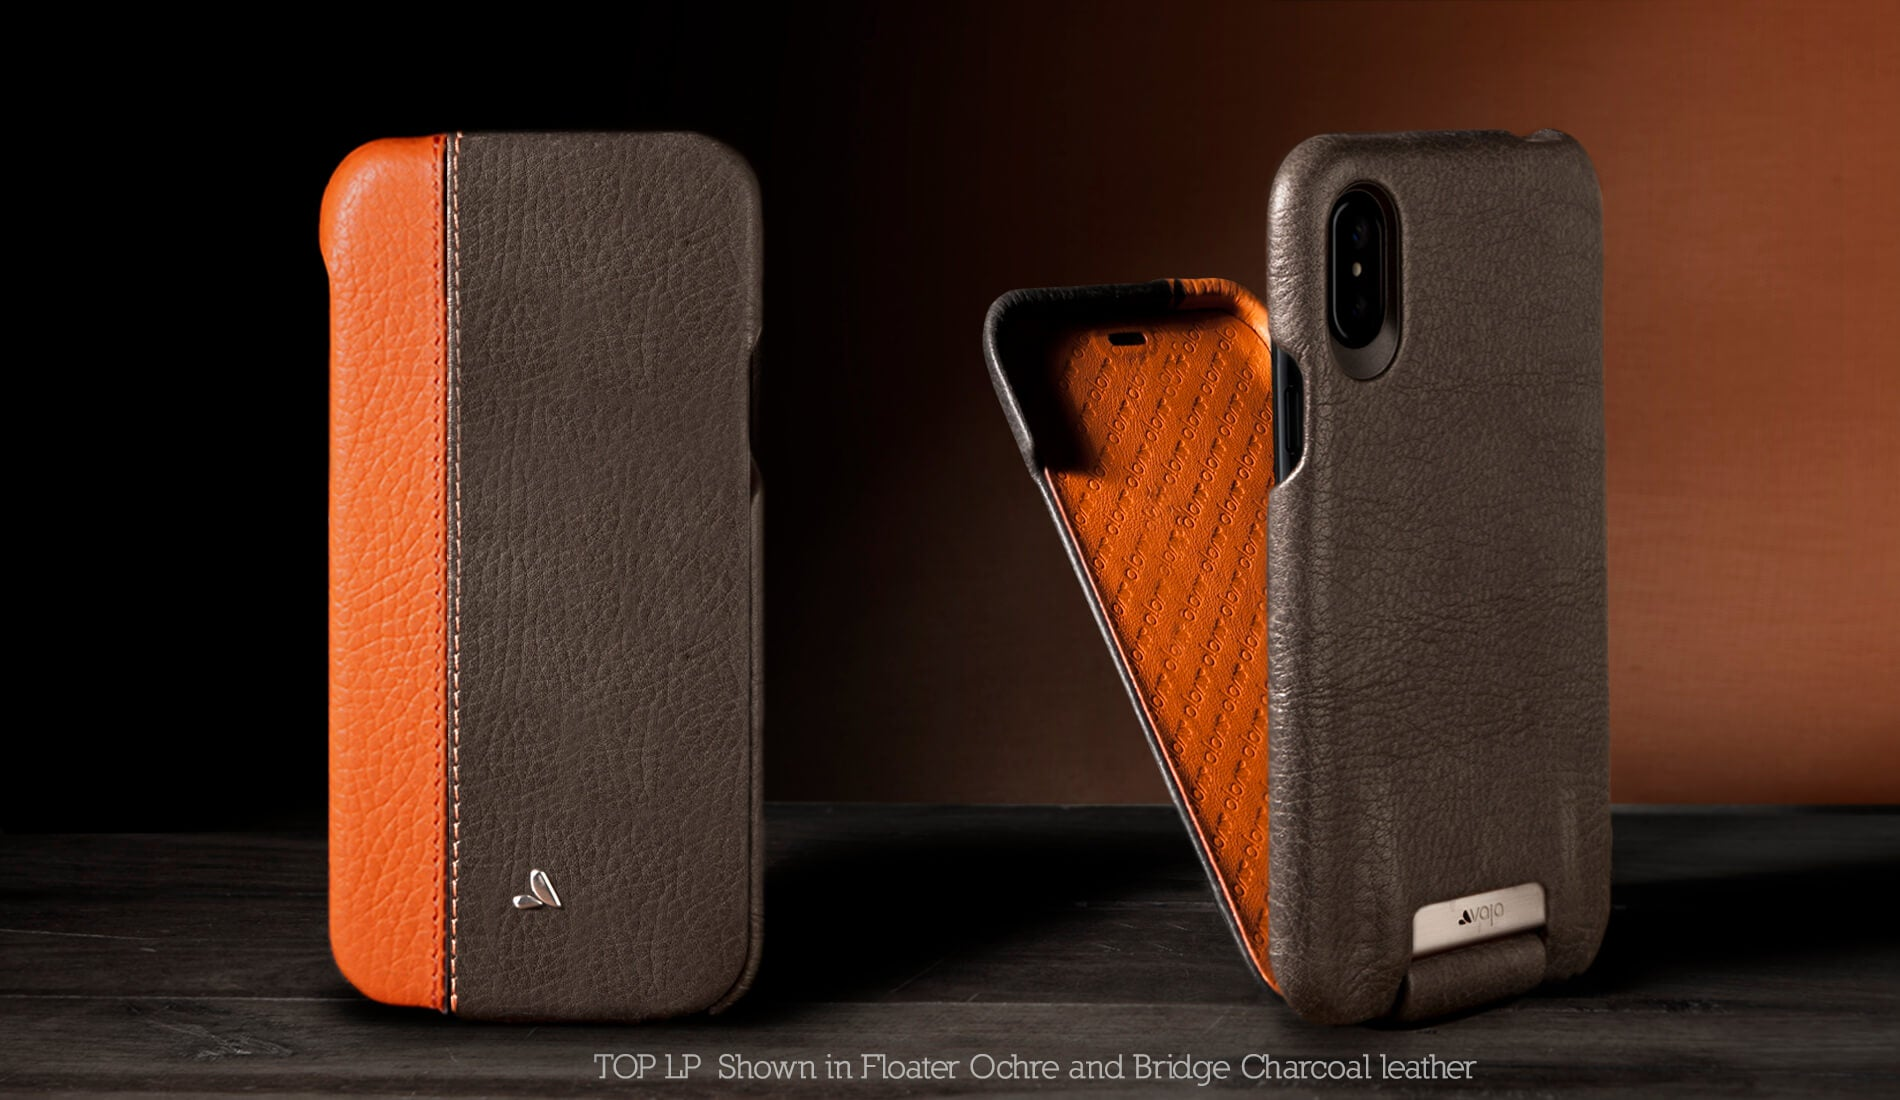 Customizable Top LP for iPhone X Leather Case